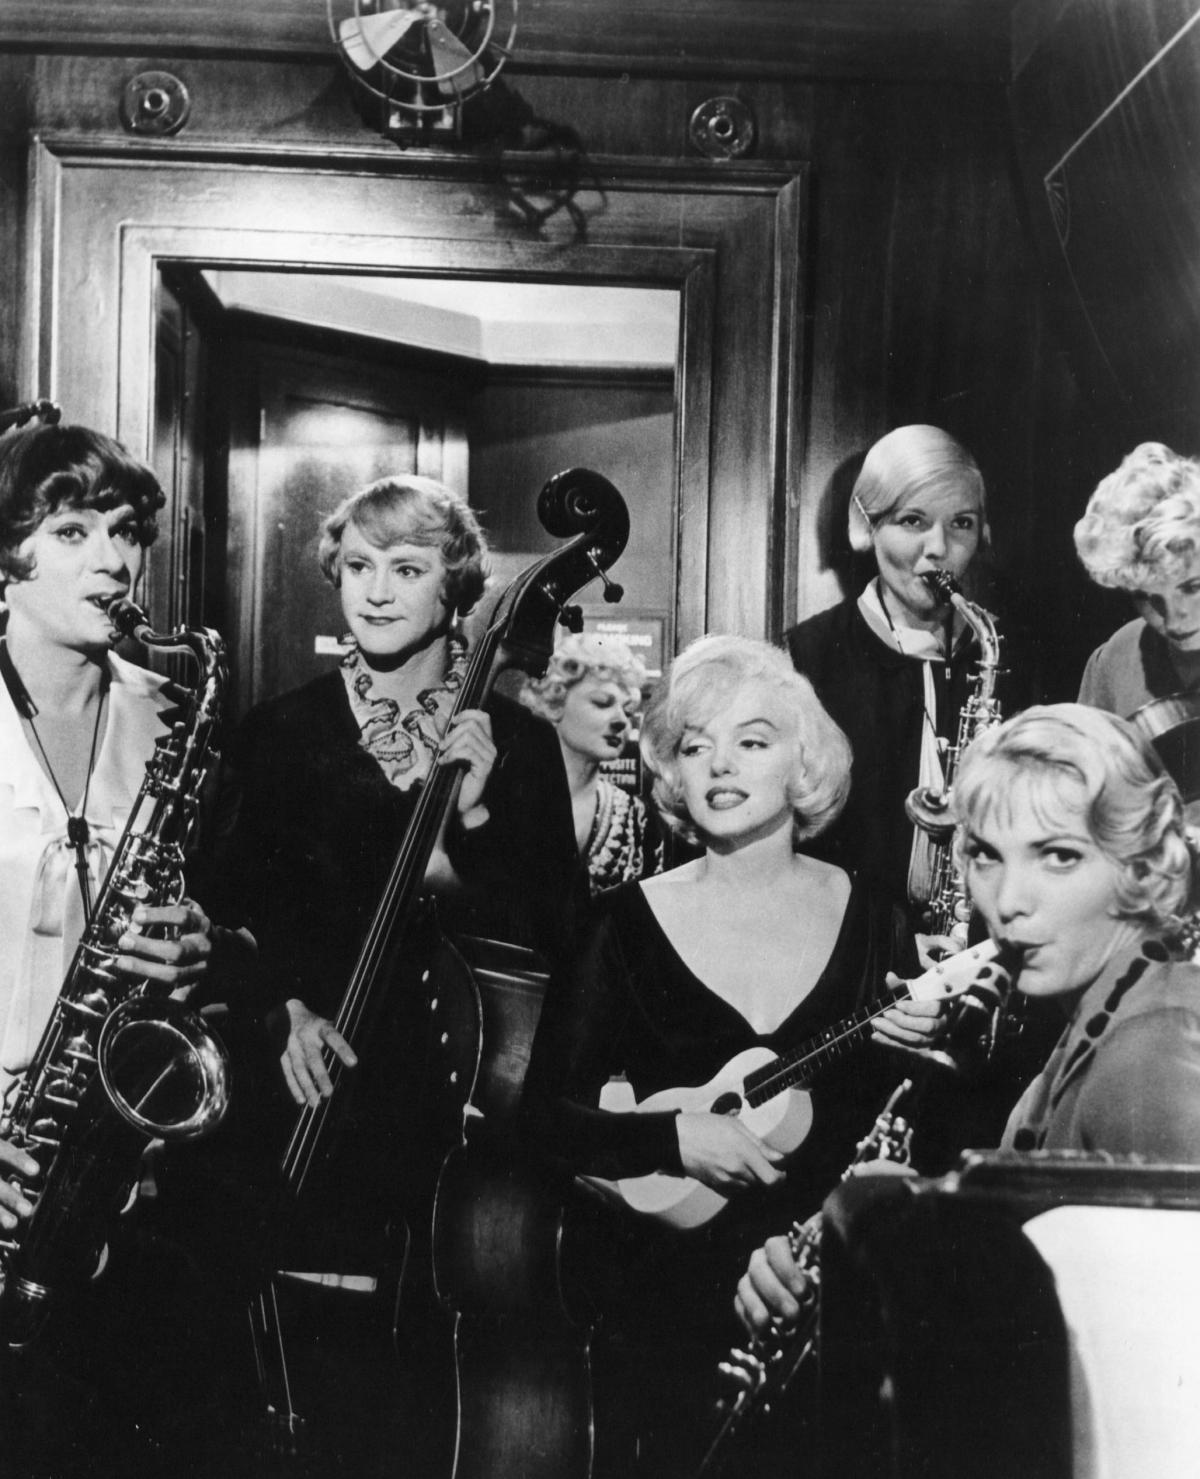 black and white film still of three women playing musical instruments